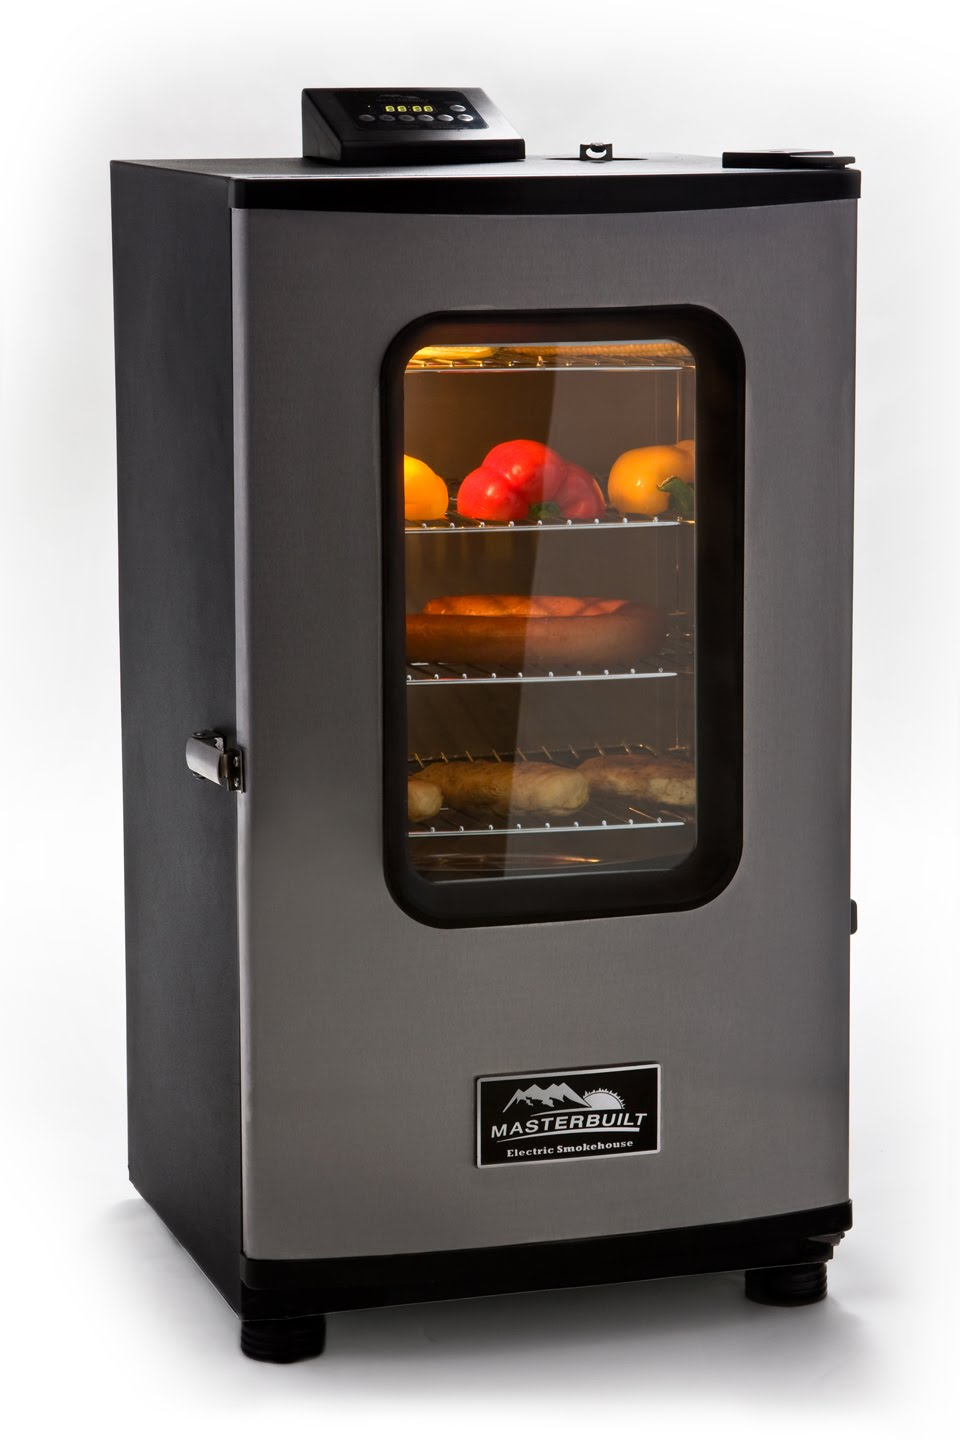 Barbecue master banner day at masterbuilt and news on for Smoked fish in masterbuilt electric smoker